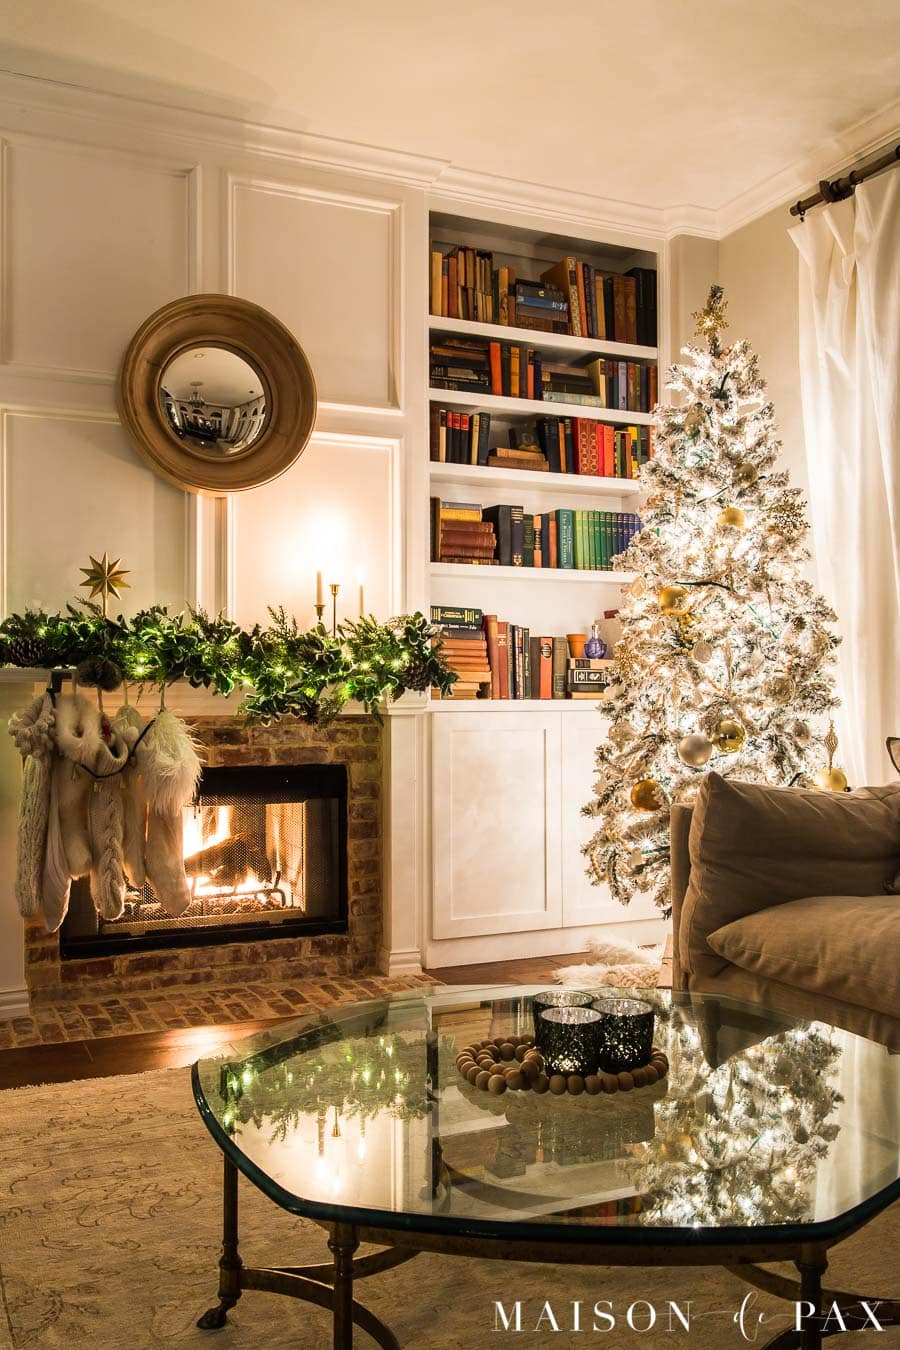 Flocked Christmas tree beside bookcase and fireplace | Maison de Pax